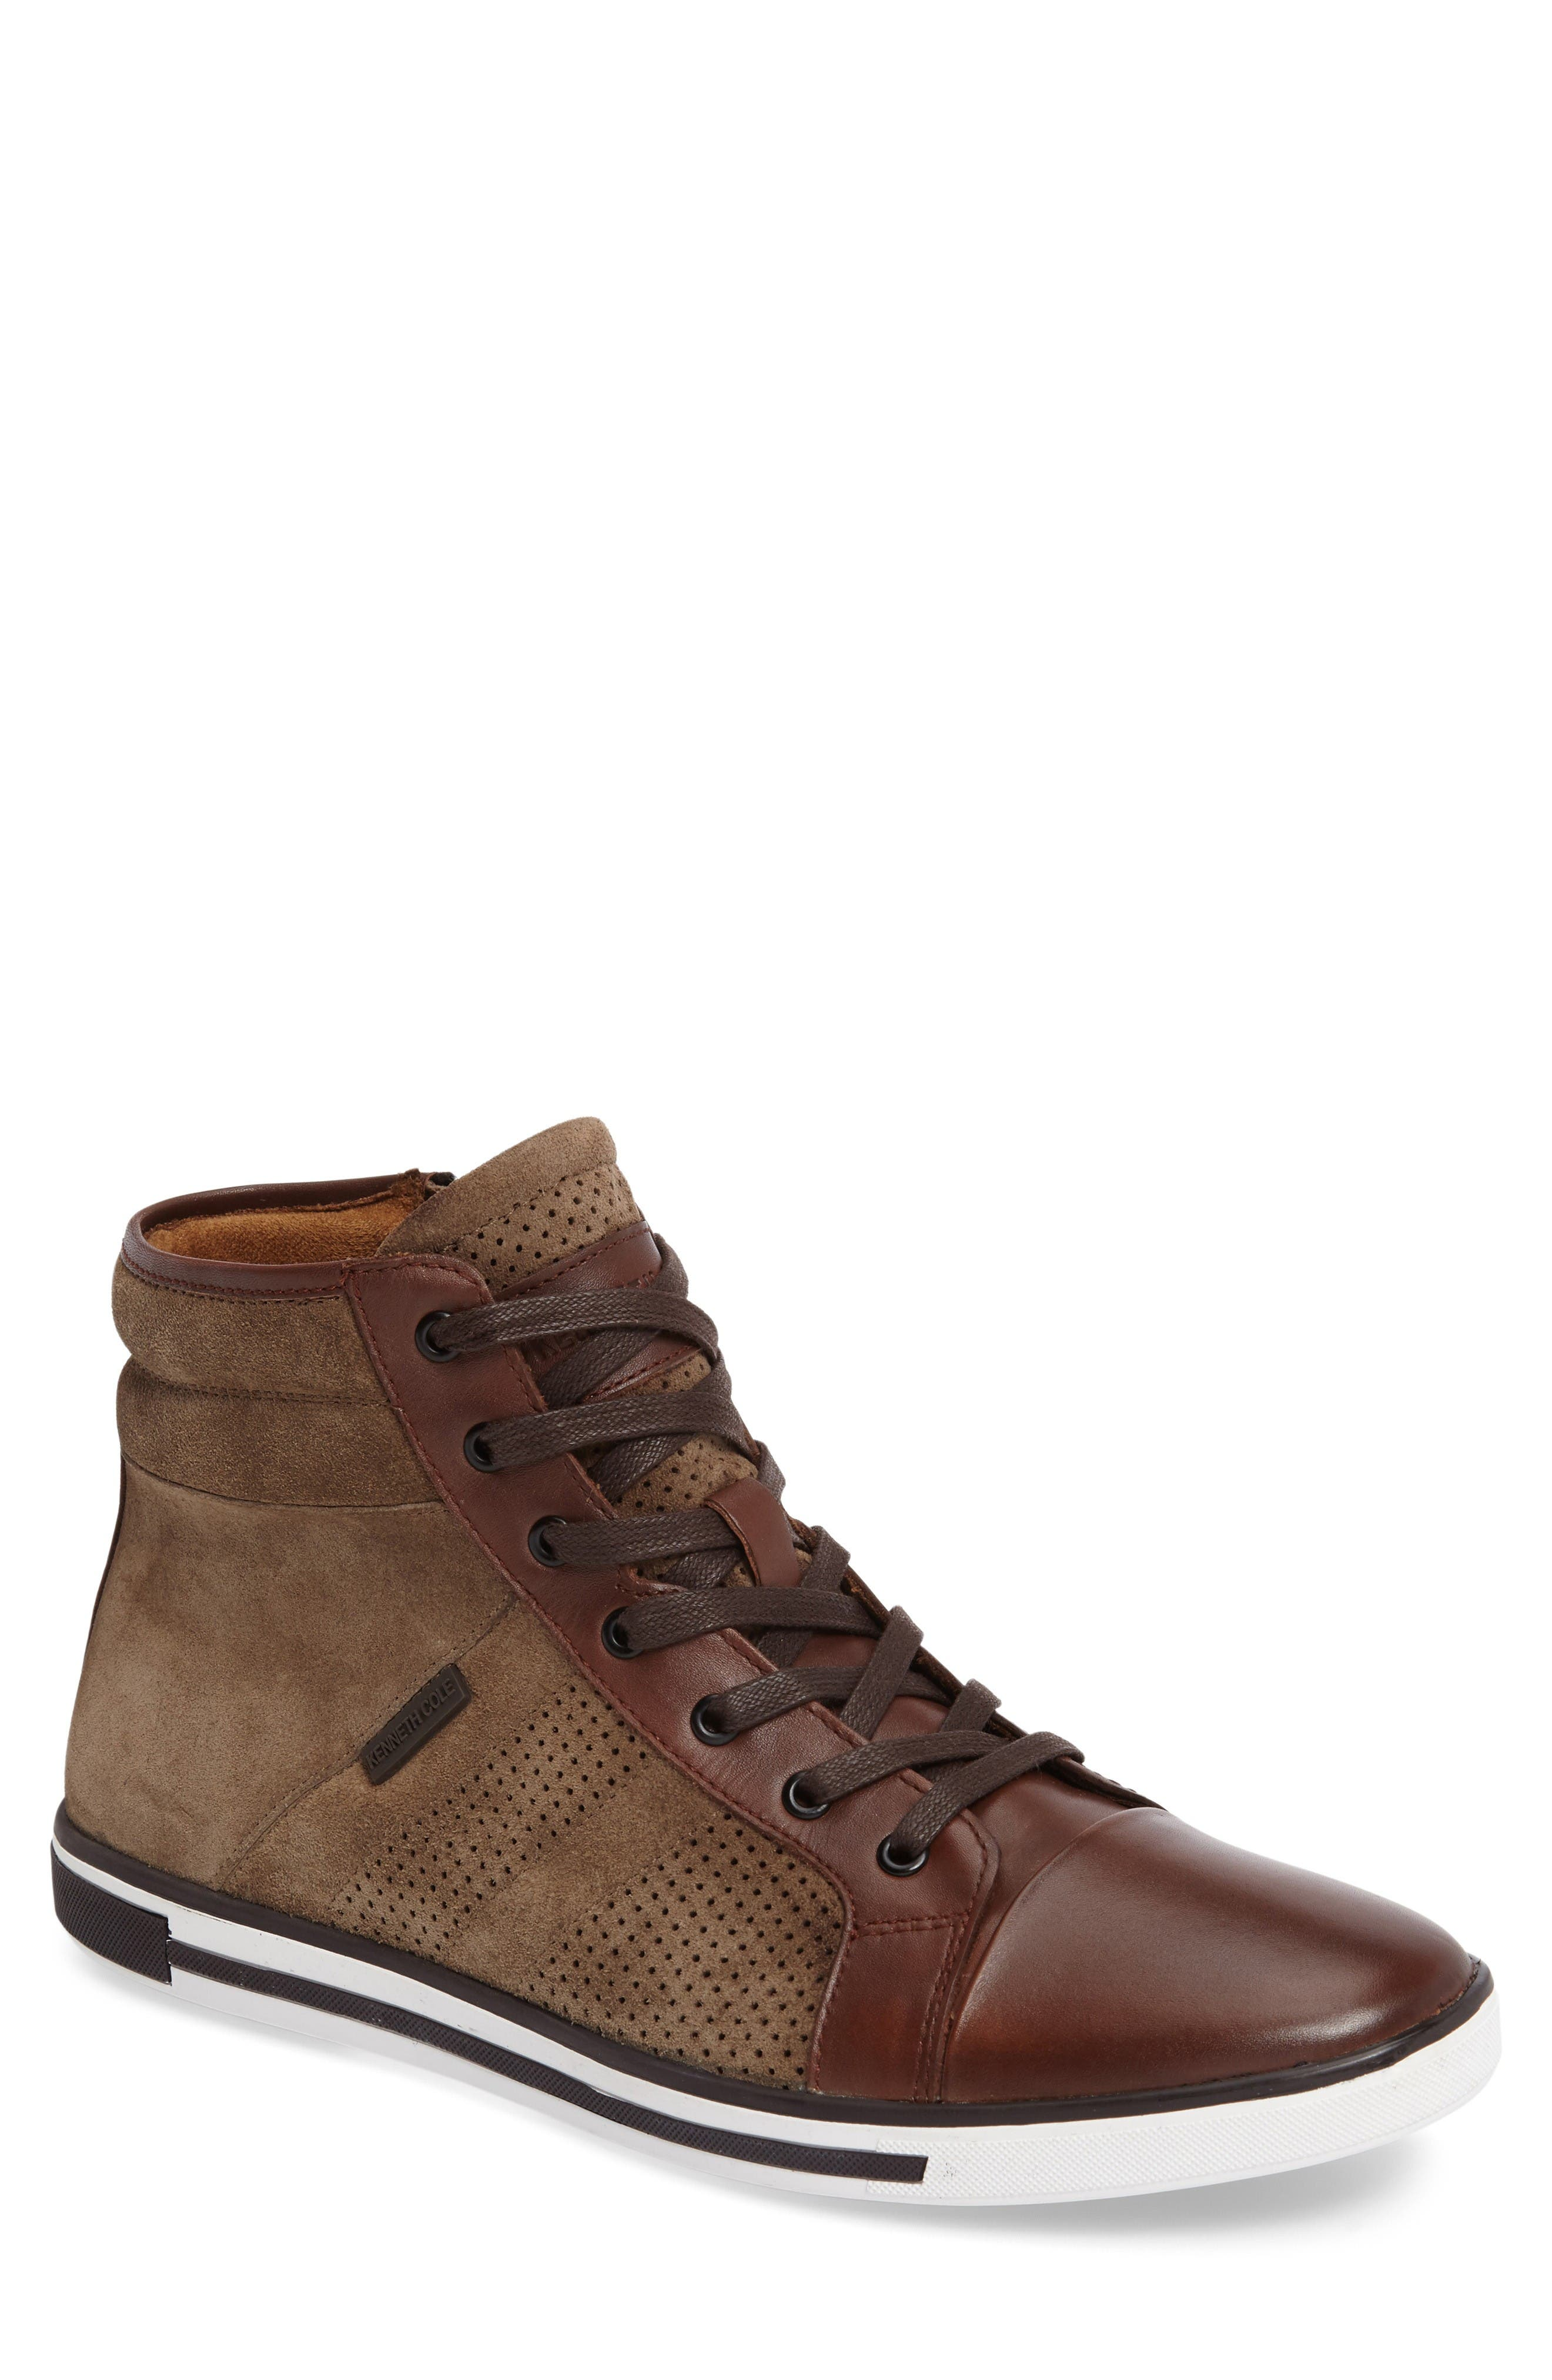 Alternate Image 1 Selected - Kenneth Cole New York Initial Point Sneaker (Men)